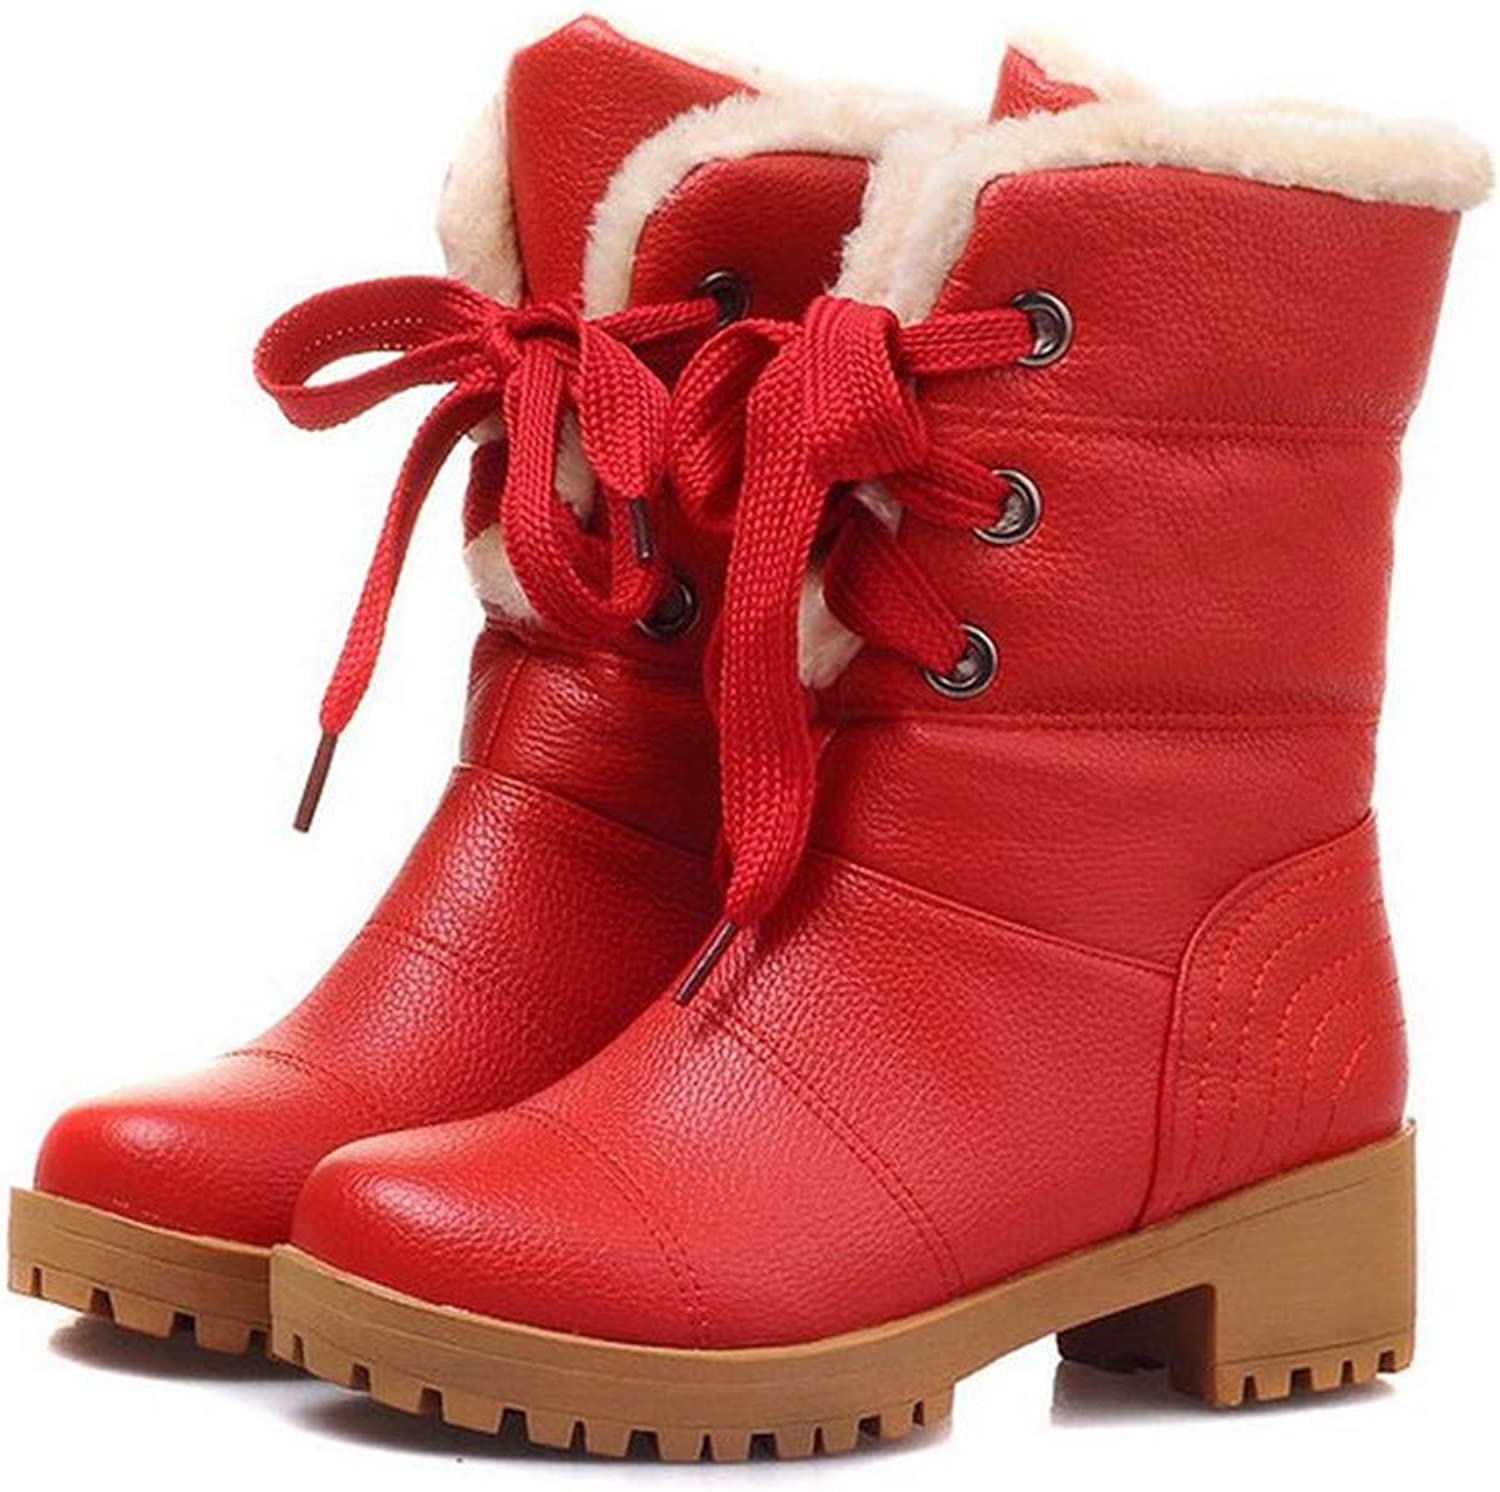 Bare&Boosth Women Half Short Boots Square Heels Winter Thicken Fur Warm Mid Calf Boot Lace-Up Gladiator shoes